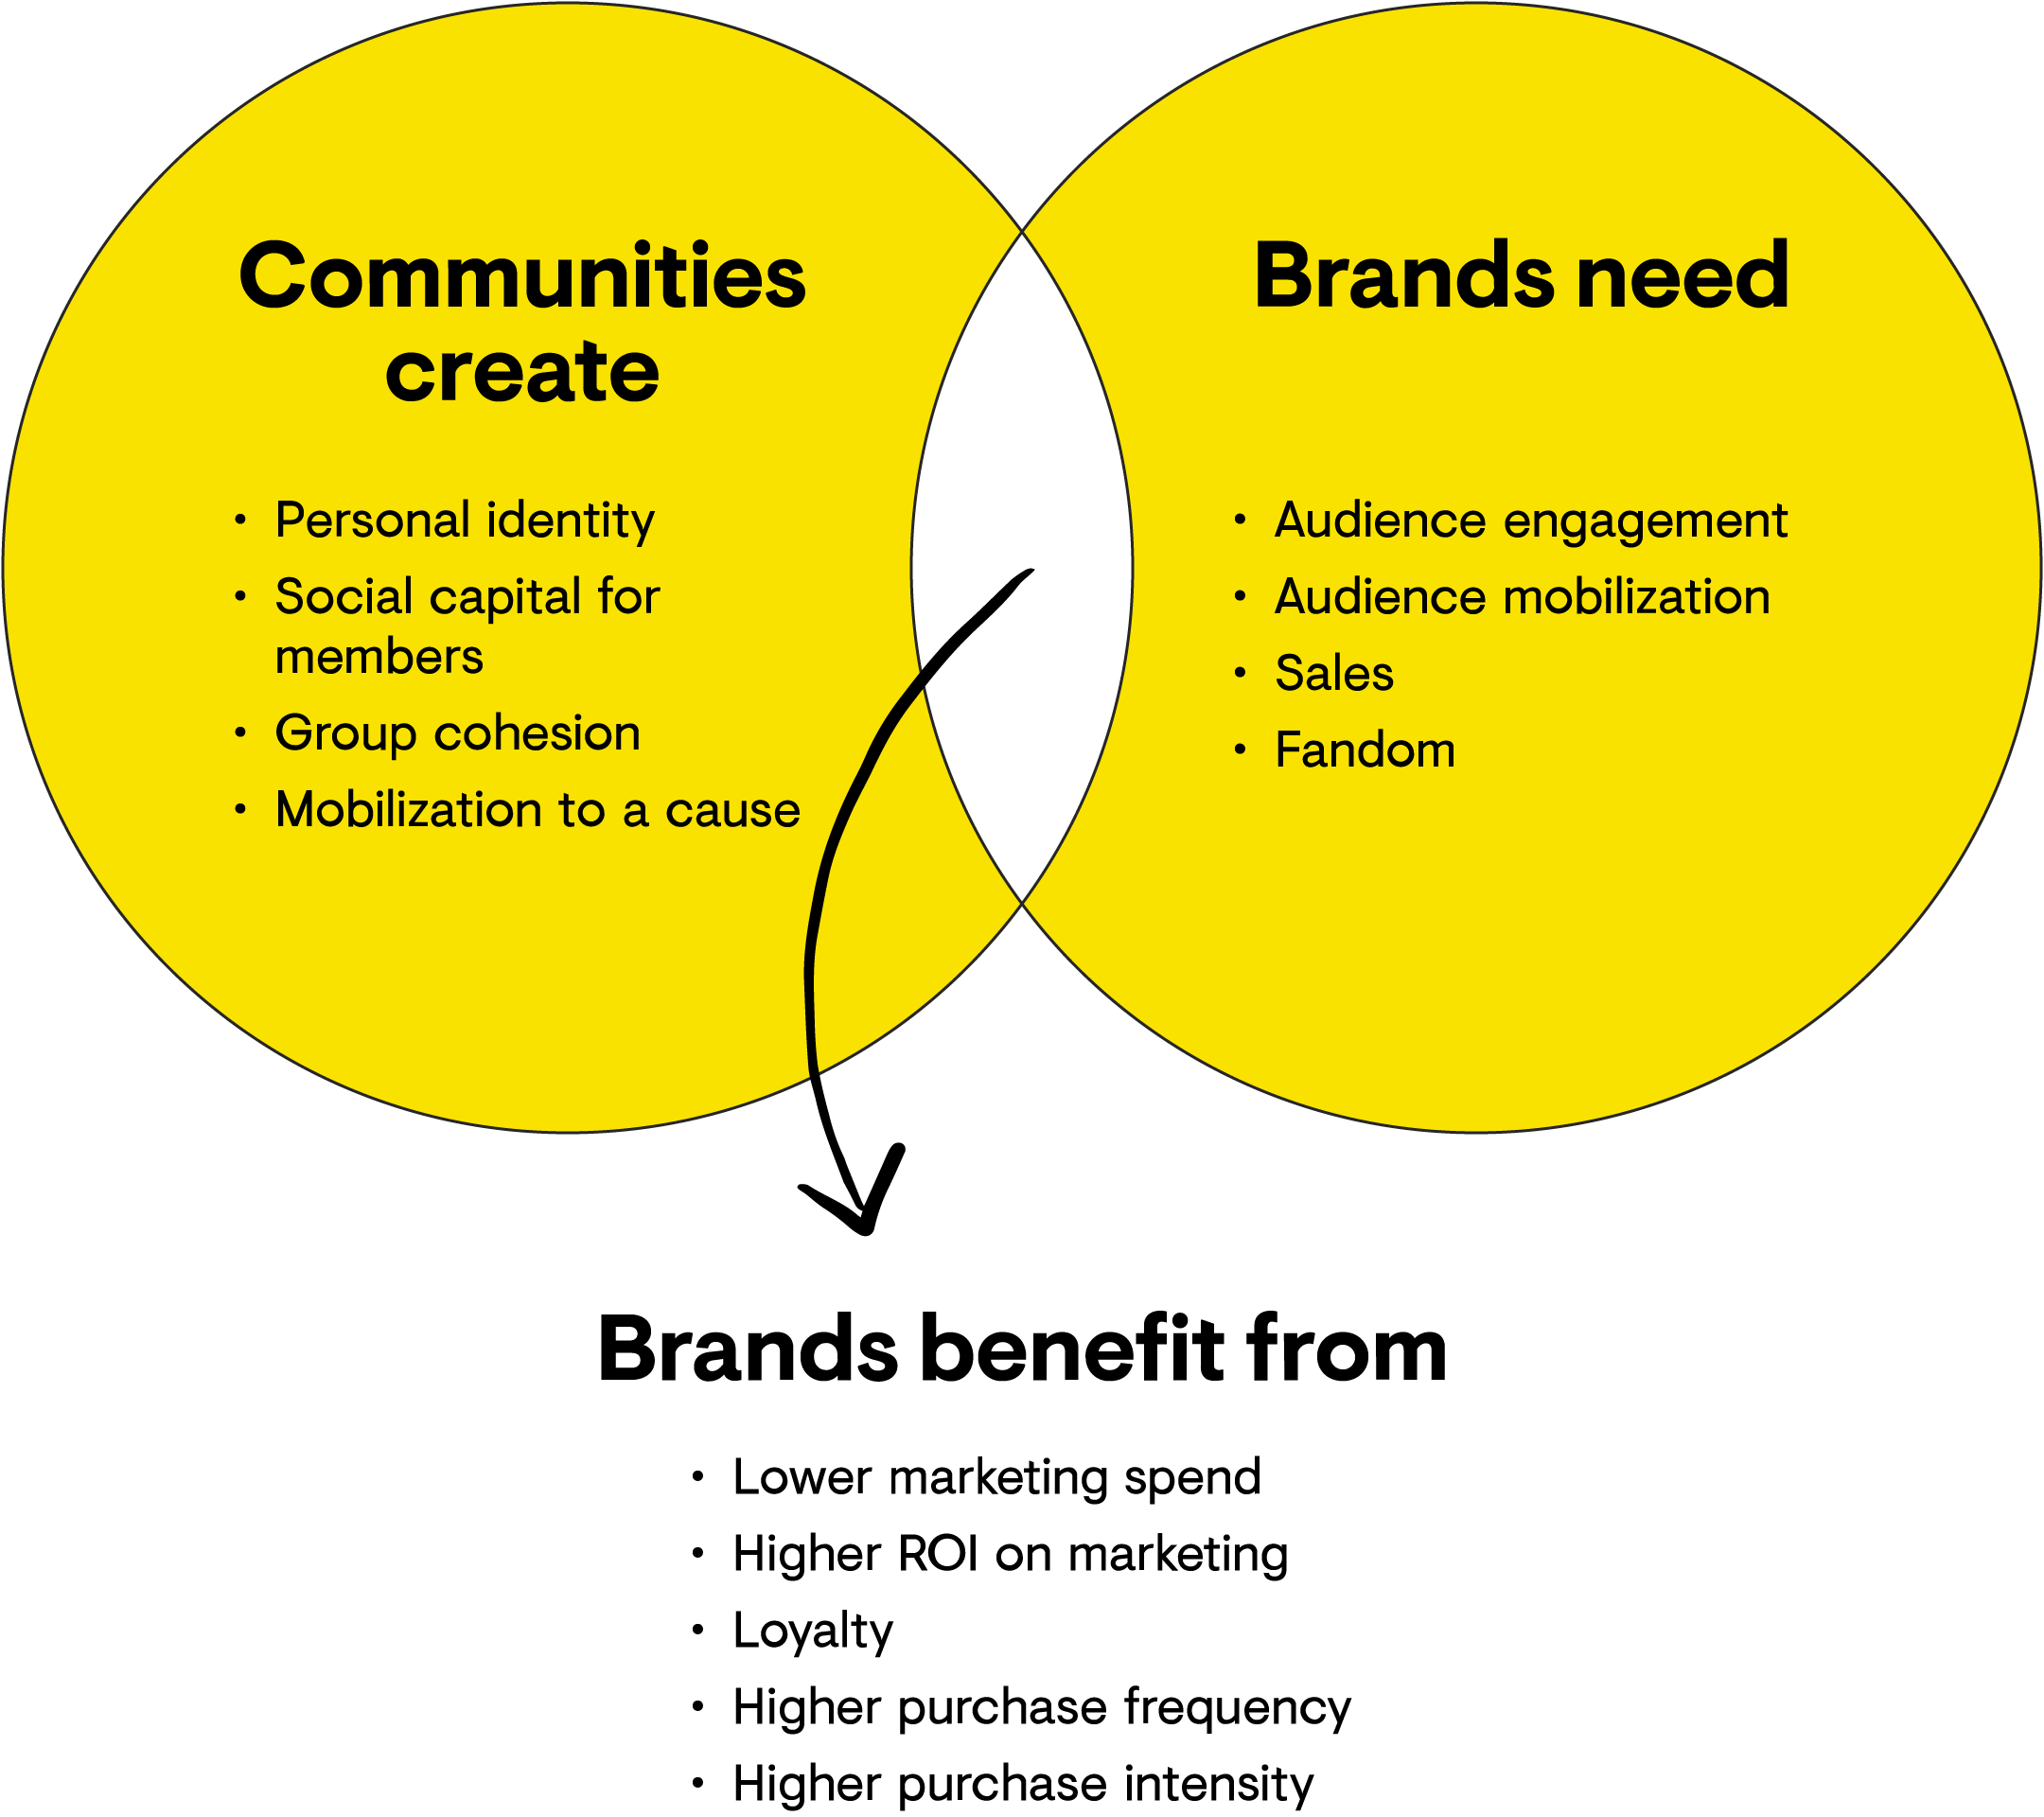 "A Venn diagram with two primary circles titled ""Communities create"" and ""Brands need"". In the ""Communities create"" circle the following items are listed: Entitativity, Mobilizaion to a cause, social capital for members, represent identity. In the ""Brands need"" circle the following items are listed: Audience engagement, audience mobilization, fandom, sales. The intersection between the two Venn diagram circles contains a title that reads ""Brands benefit from"" with the following points underneath: Loyalty, lower marketing spend, higher ROI on marketing, higher purchase frequency, higher purchase intensity"